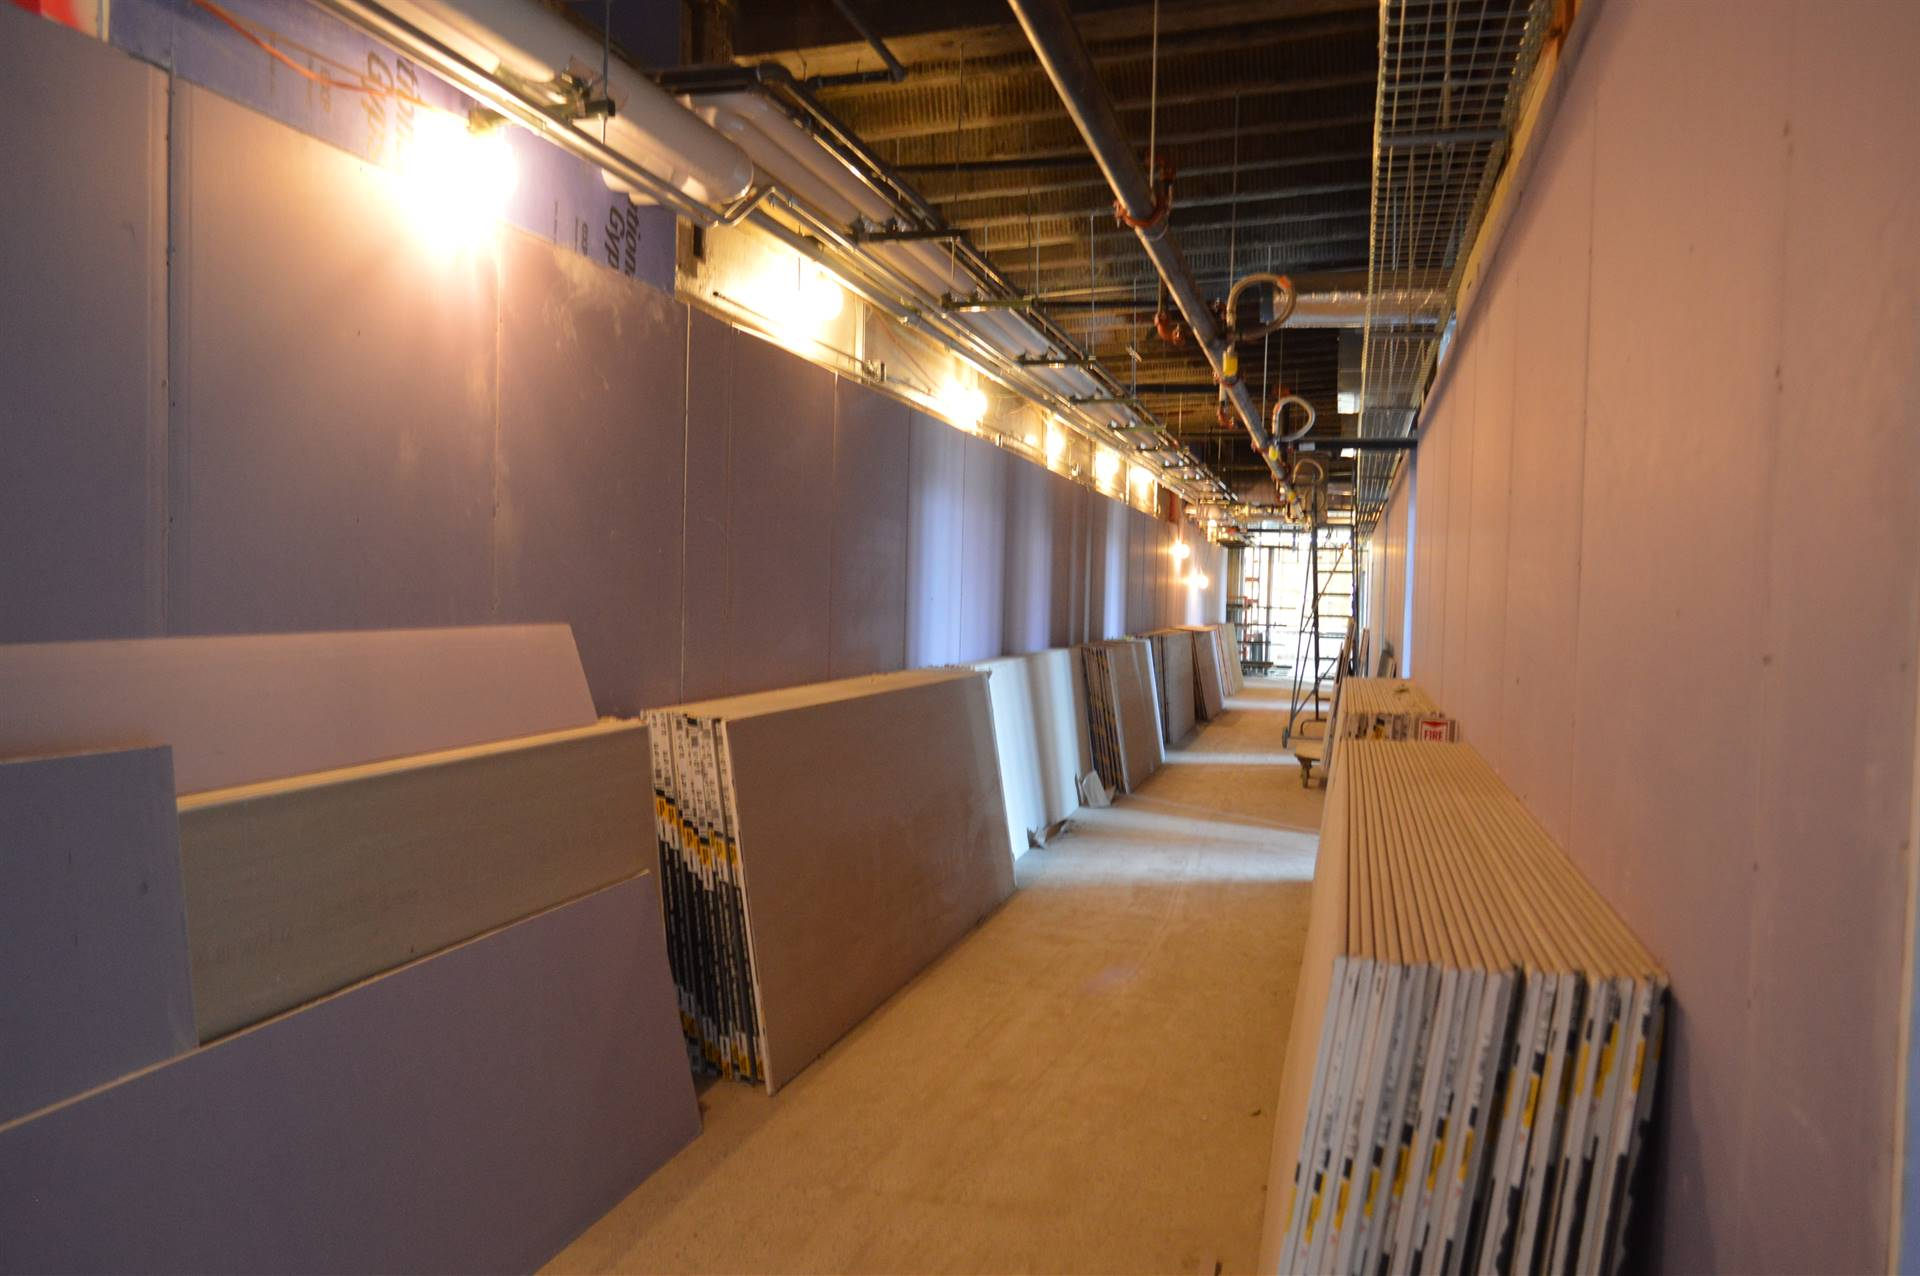 New drywall up in renovated areas of the 1922 portion of Rossford High School.